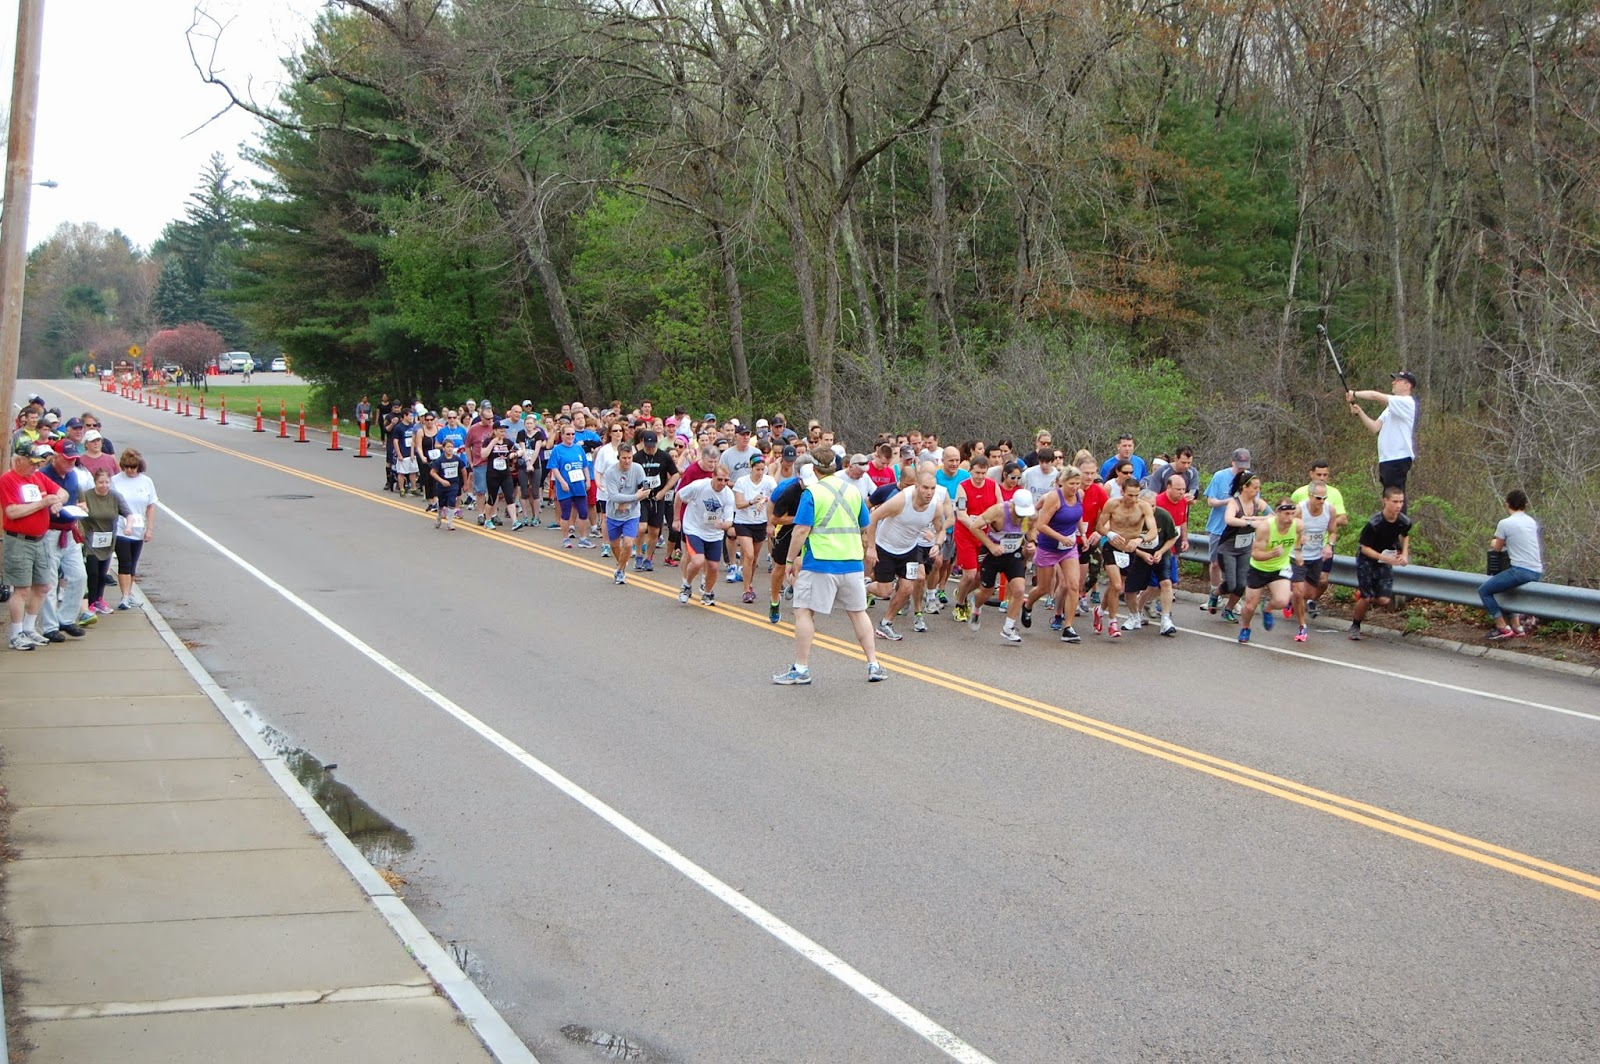 The start of the Elks race in 2014